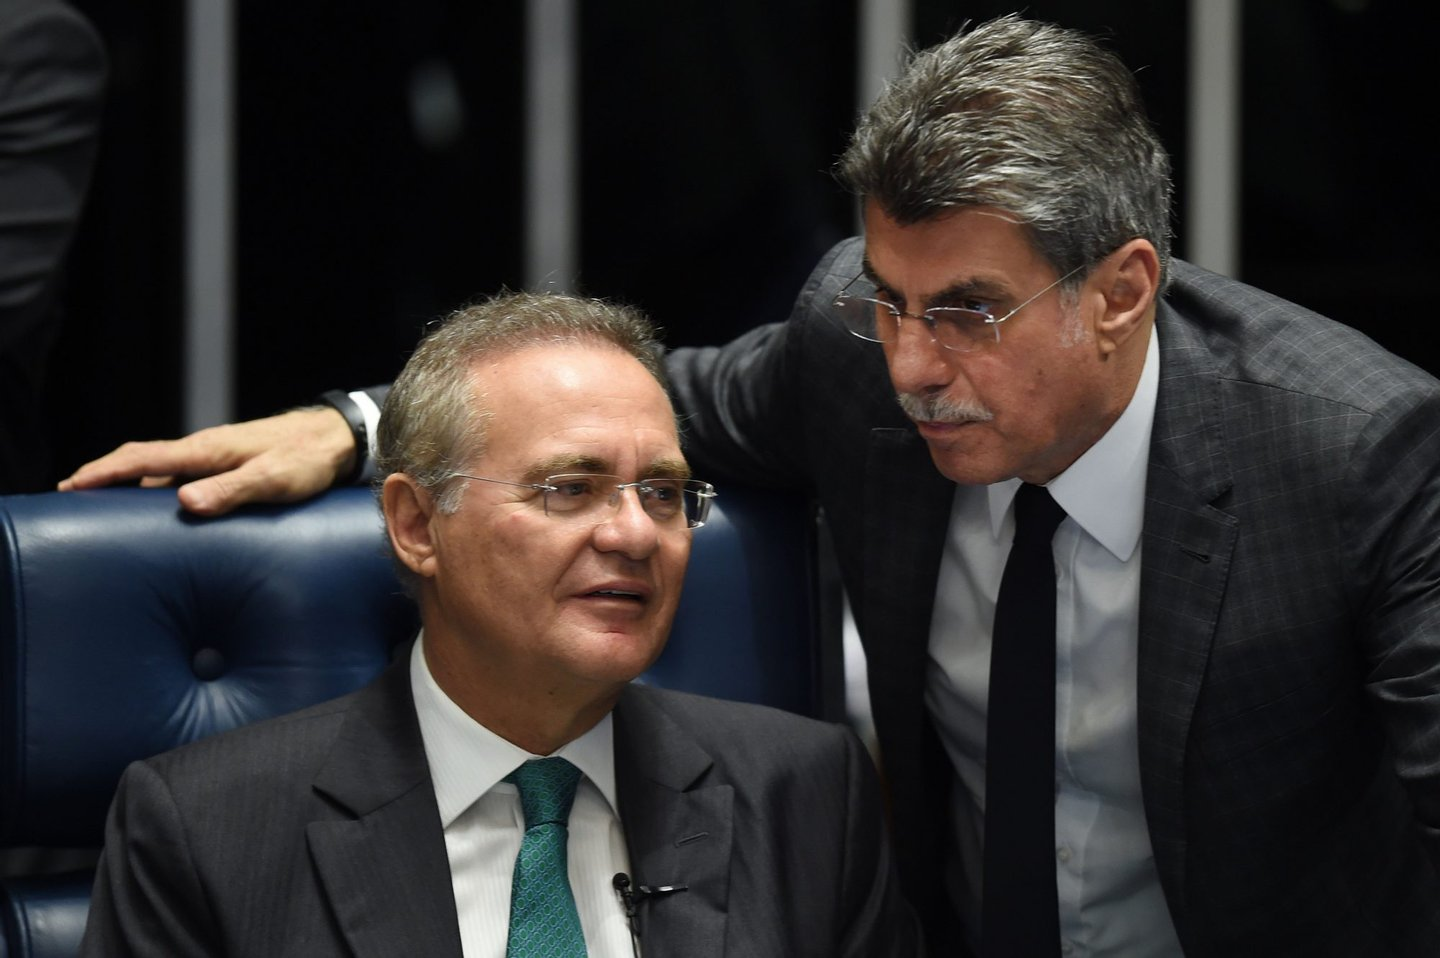 Senate President Renan Calheiros(L) and senator Romero Juca talk during debate Wednesday on suspending and impeaching President Dilma Rousseff in Brasilia on May 11, 2016.  The Senate opened debate that could bring down the curtain on 13 years of leftist rule in Latin America's biggest country. Even allies of Rousseff, 68, said she had no chance of surviving the vote.  / AFP / EVARISTO SA        (Photo credit should read EVARISTO SA/AFP/Getty Images)